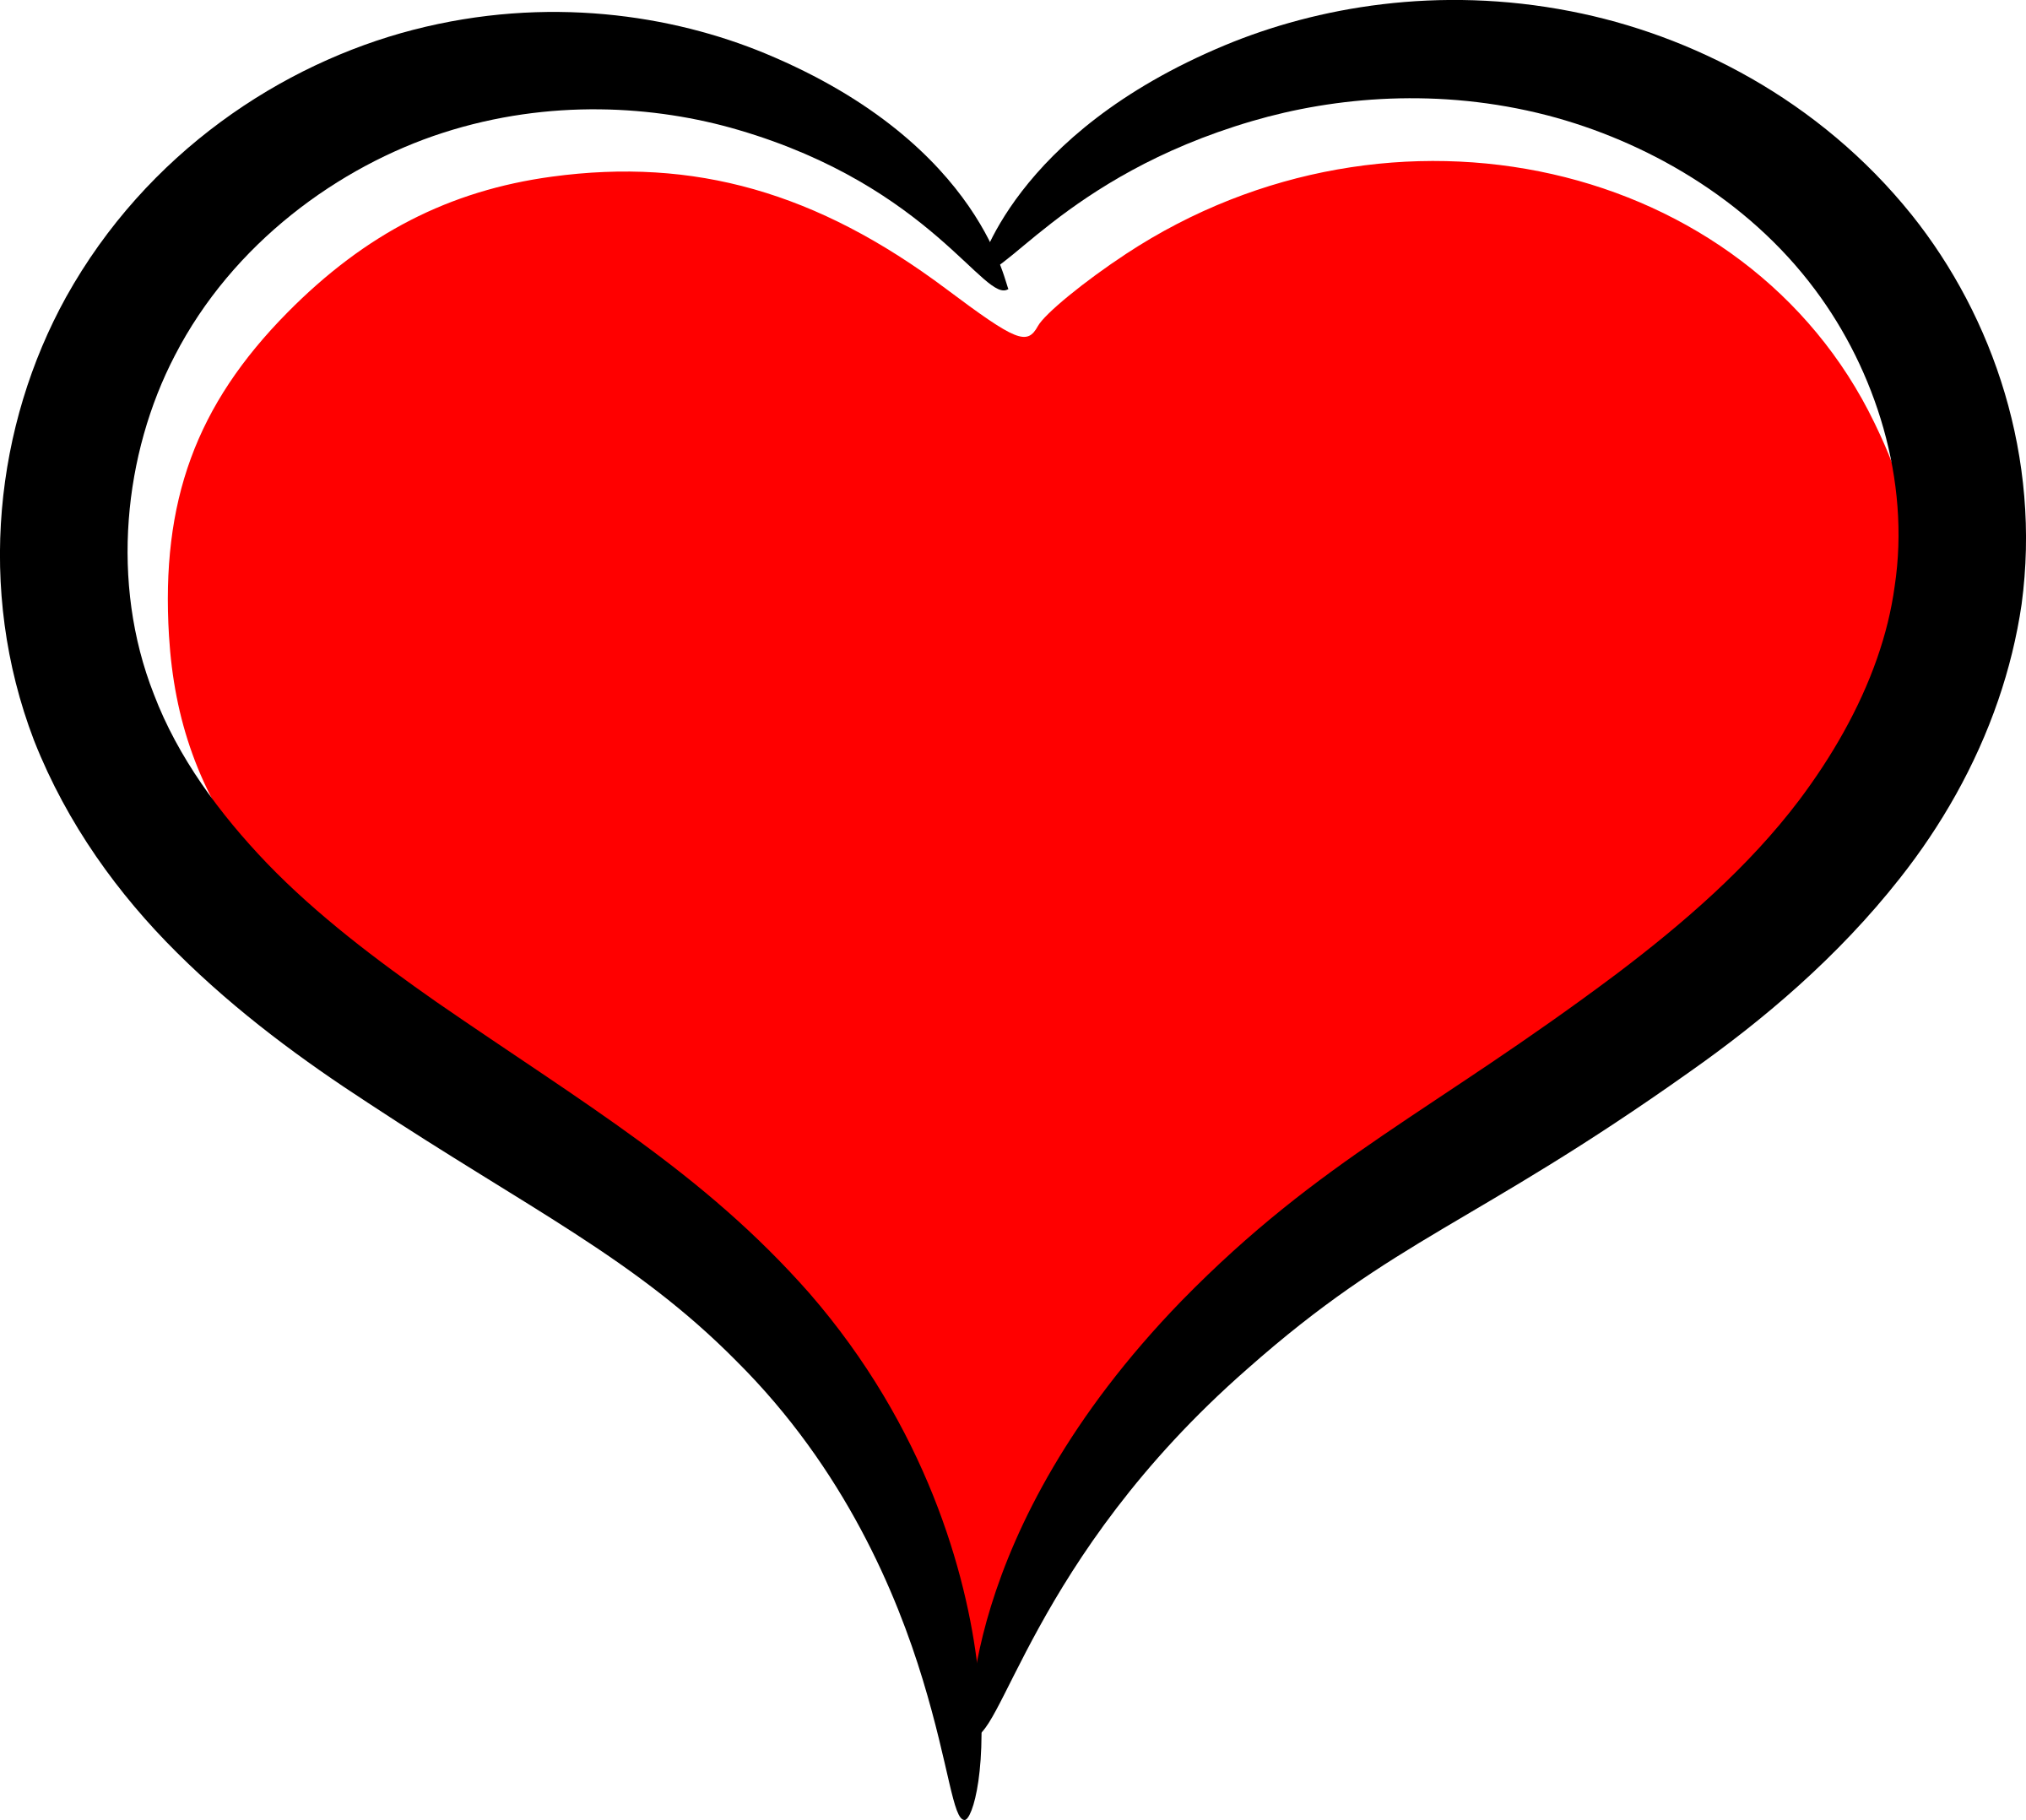 Red heart icon png. Free download glossy clipart